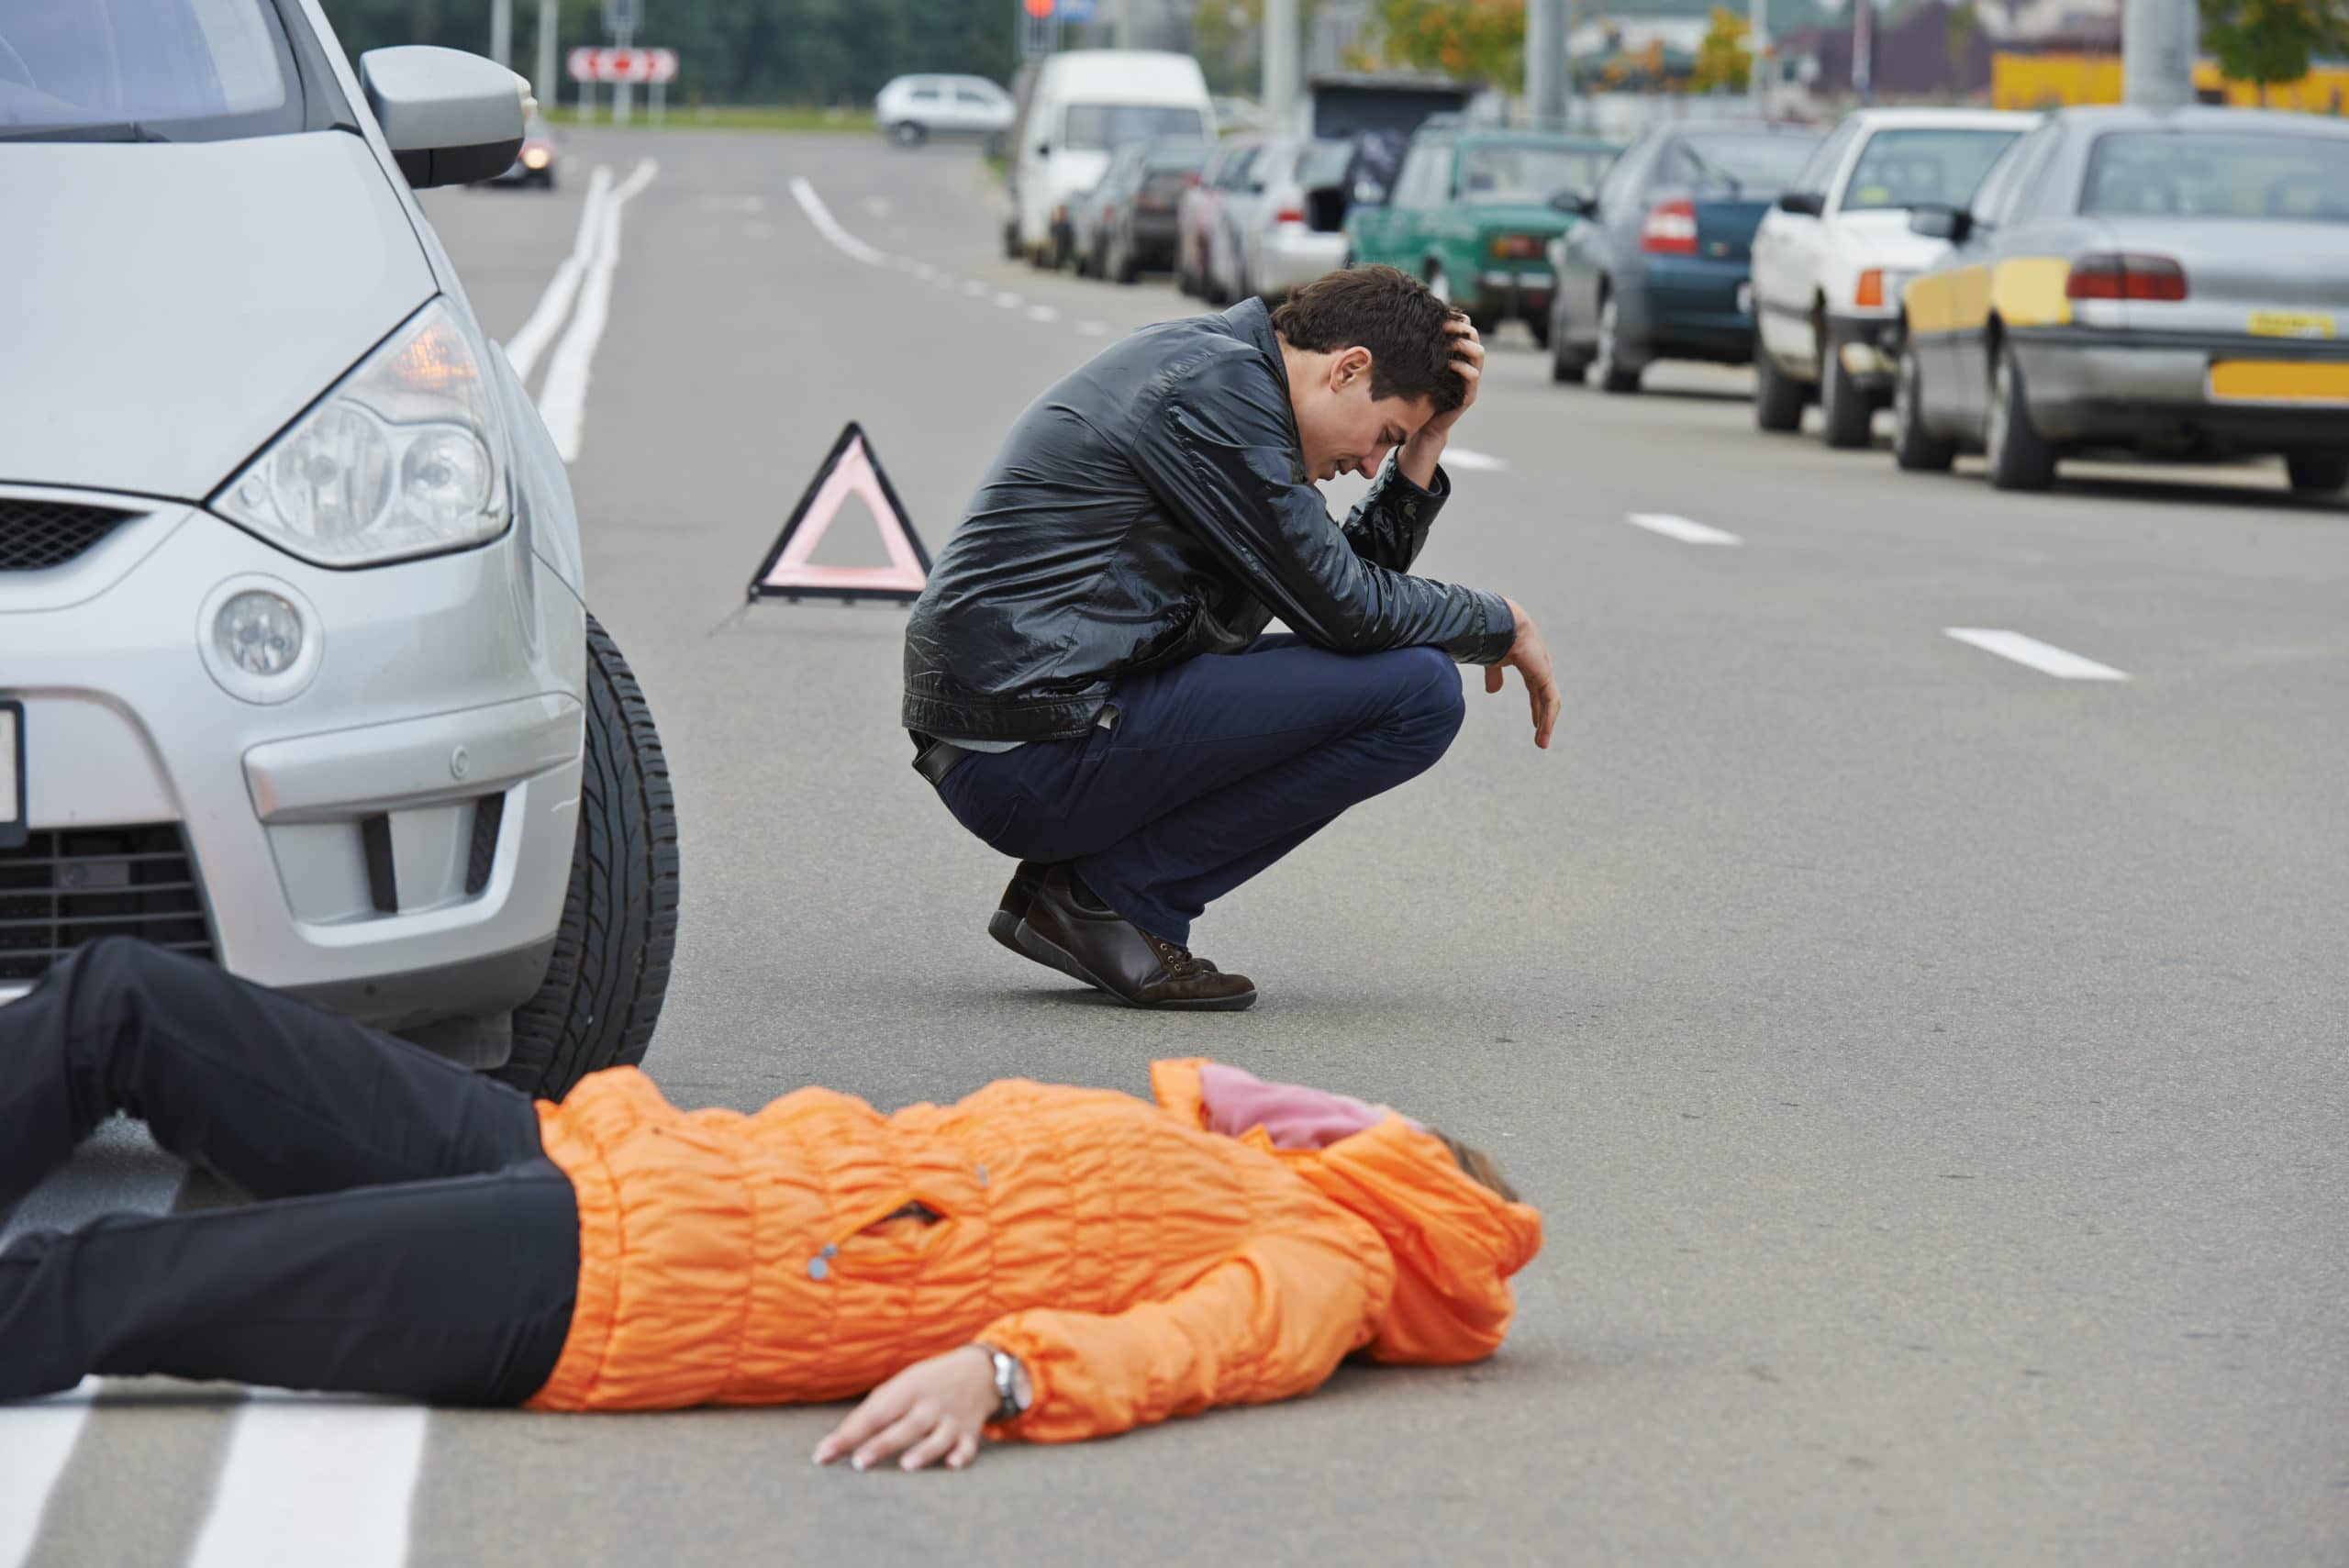 An upset driver kneels near an injured person on the roadway after a car accident